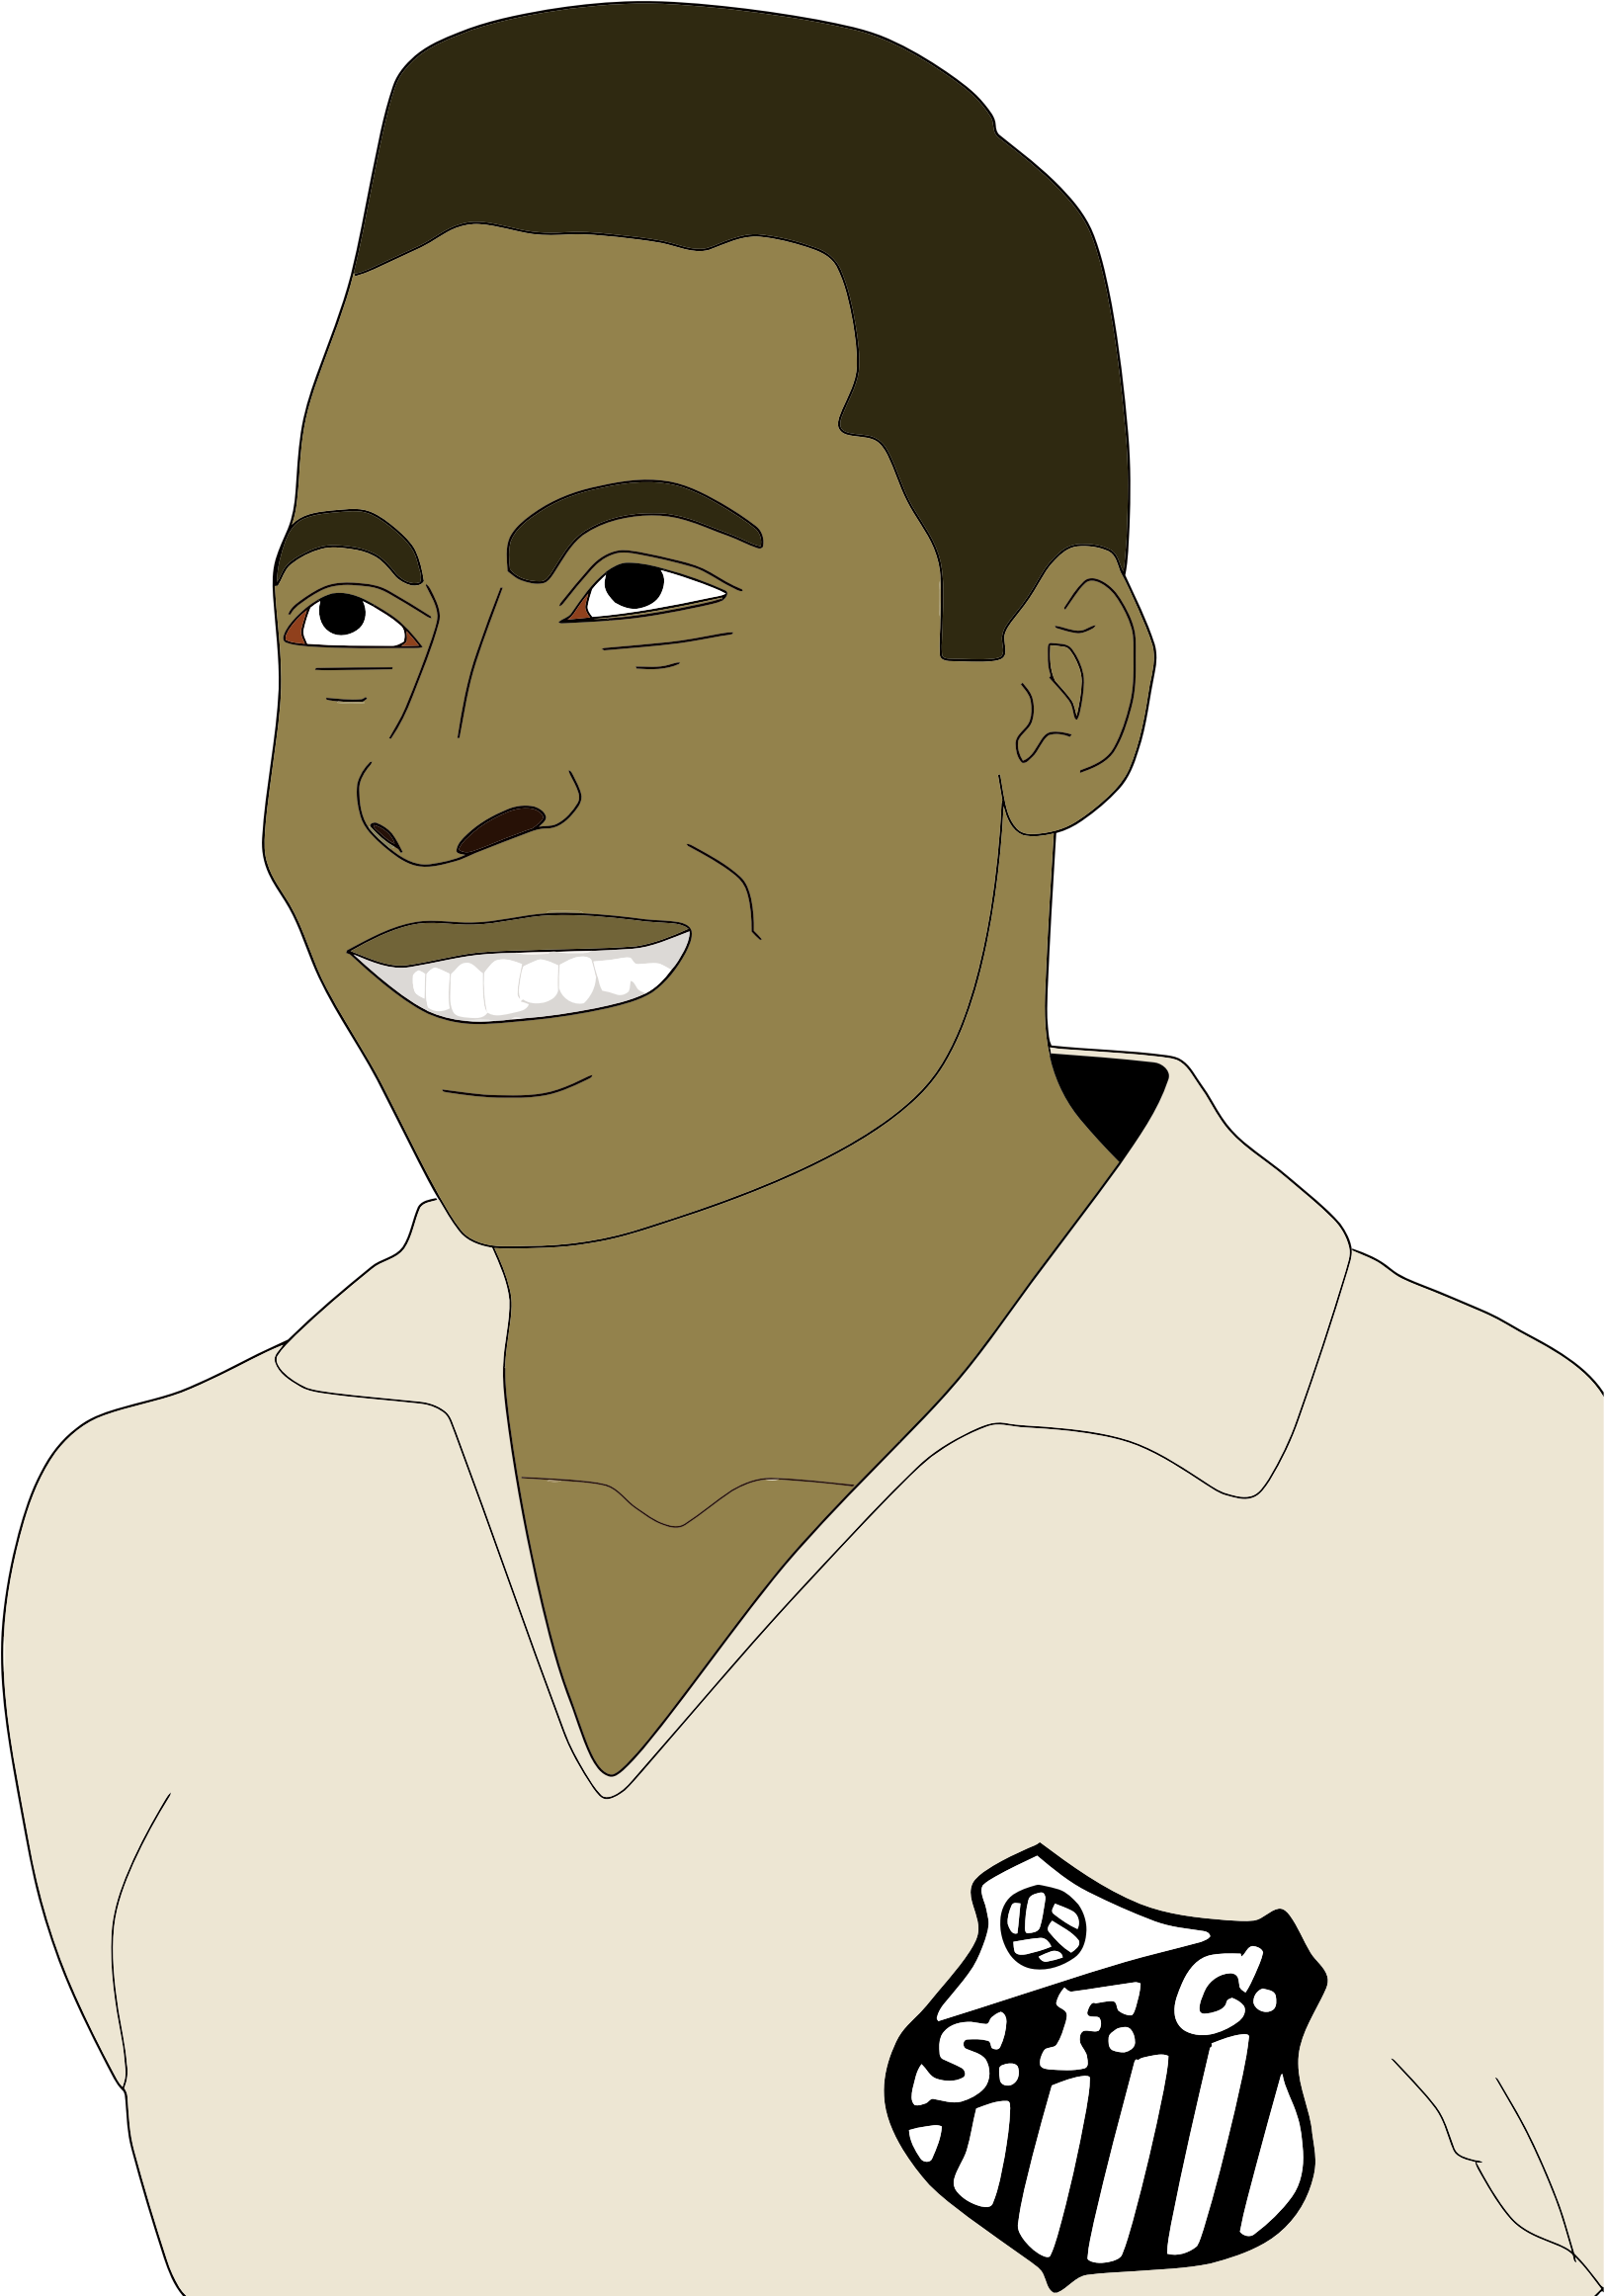 Pele Portrait by GDJ